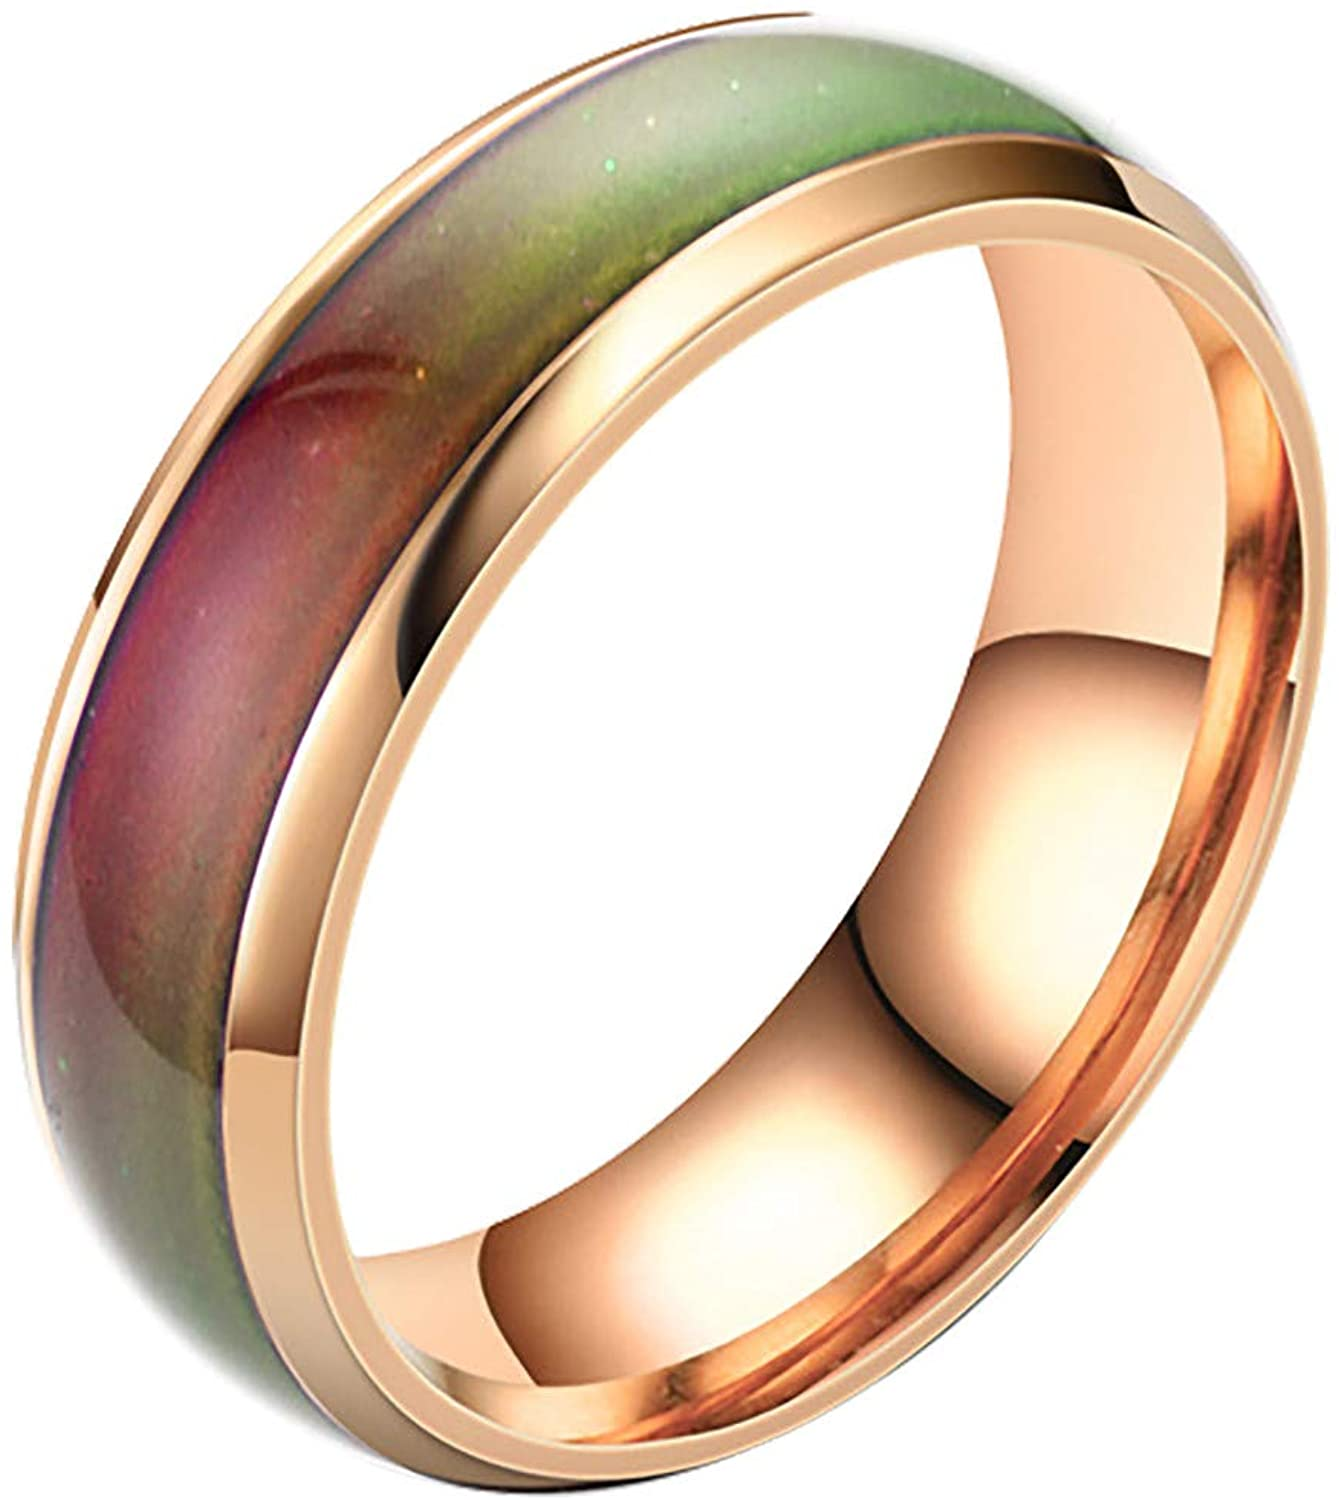 2021 Stainless Steel Temperature Sensative Color Changing Wedding Band Mood Ring for Women Men